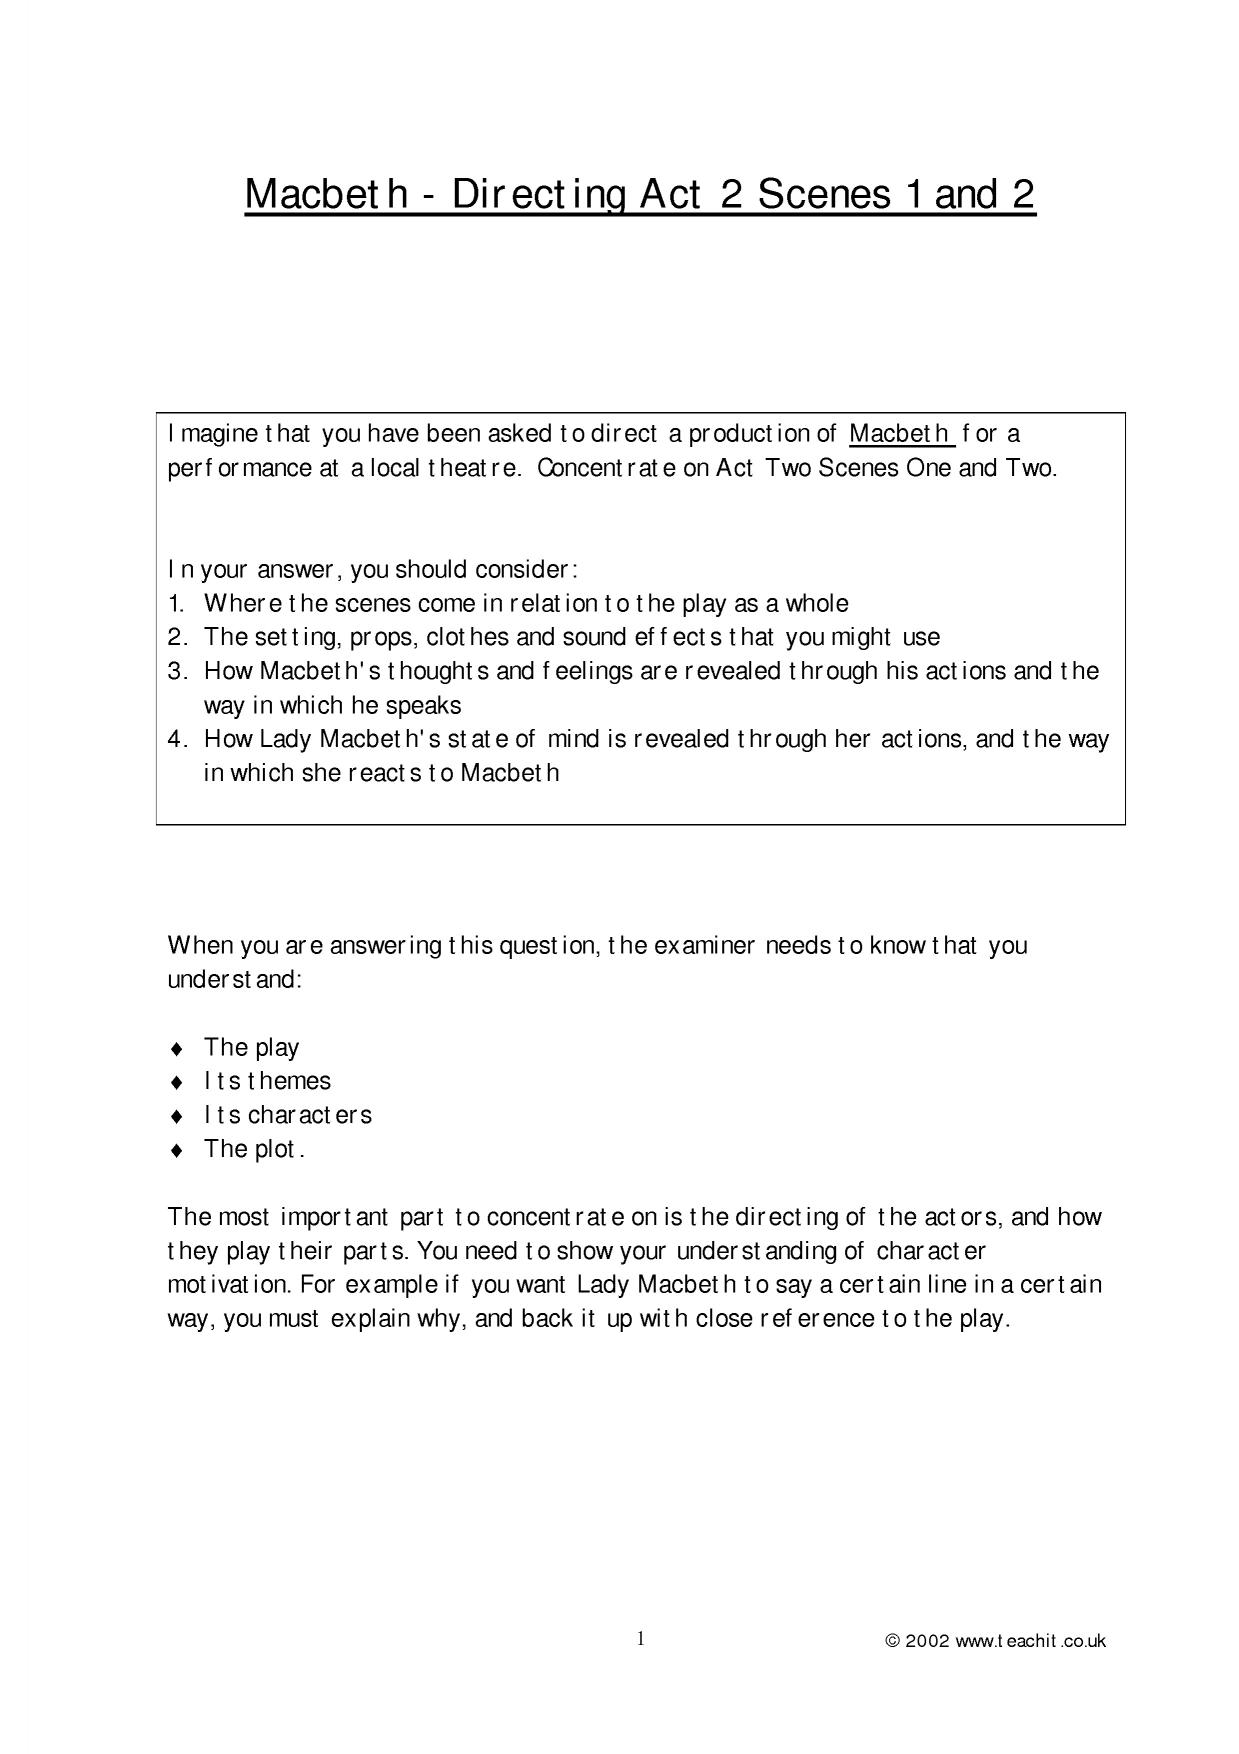 relationship between macbeth and lady macbeth essay plan  relationship between macbeth and lady macbeth essay plan